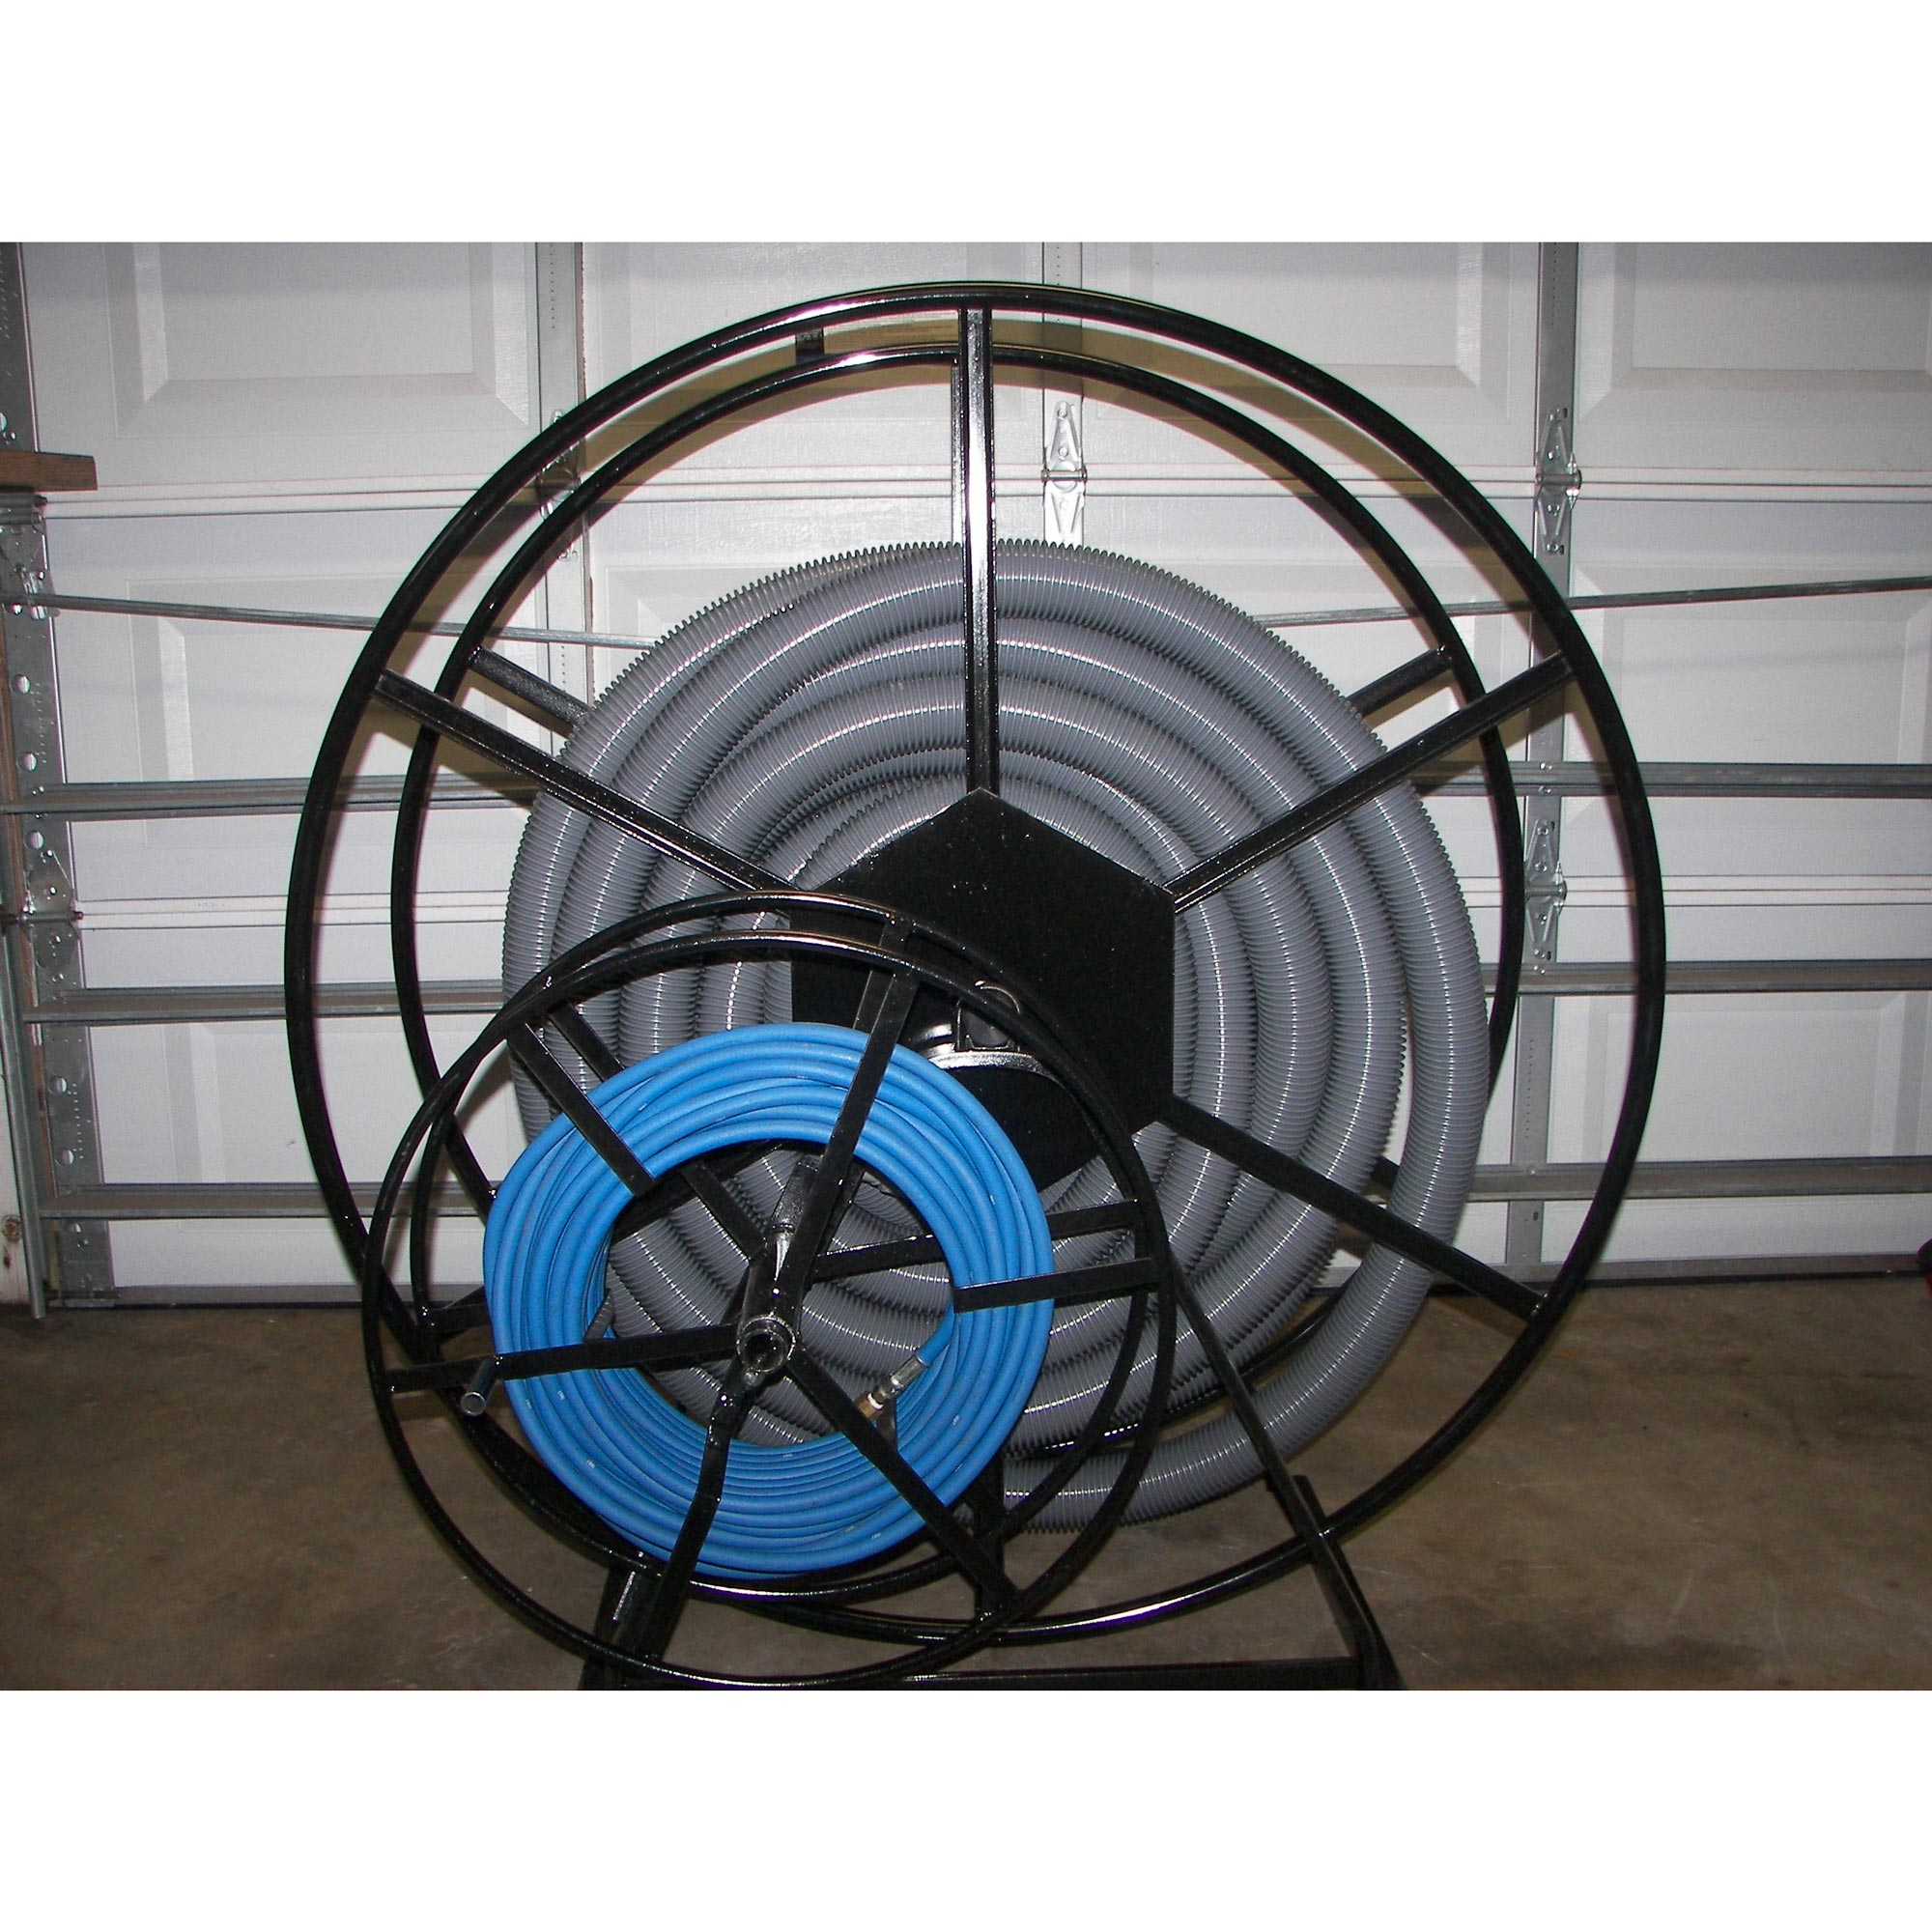 Rokan 300 ft Double Truckmount Hose Reel Package 20180117